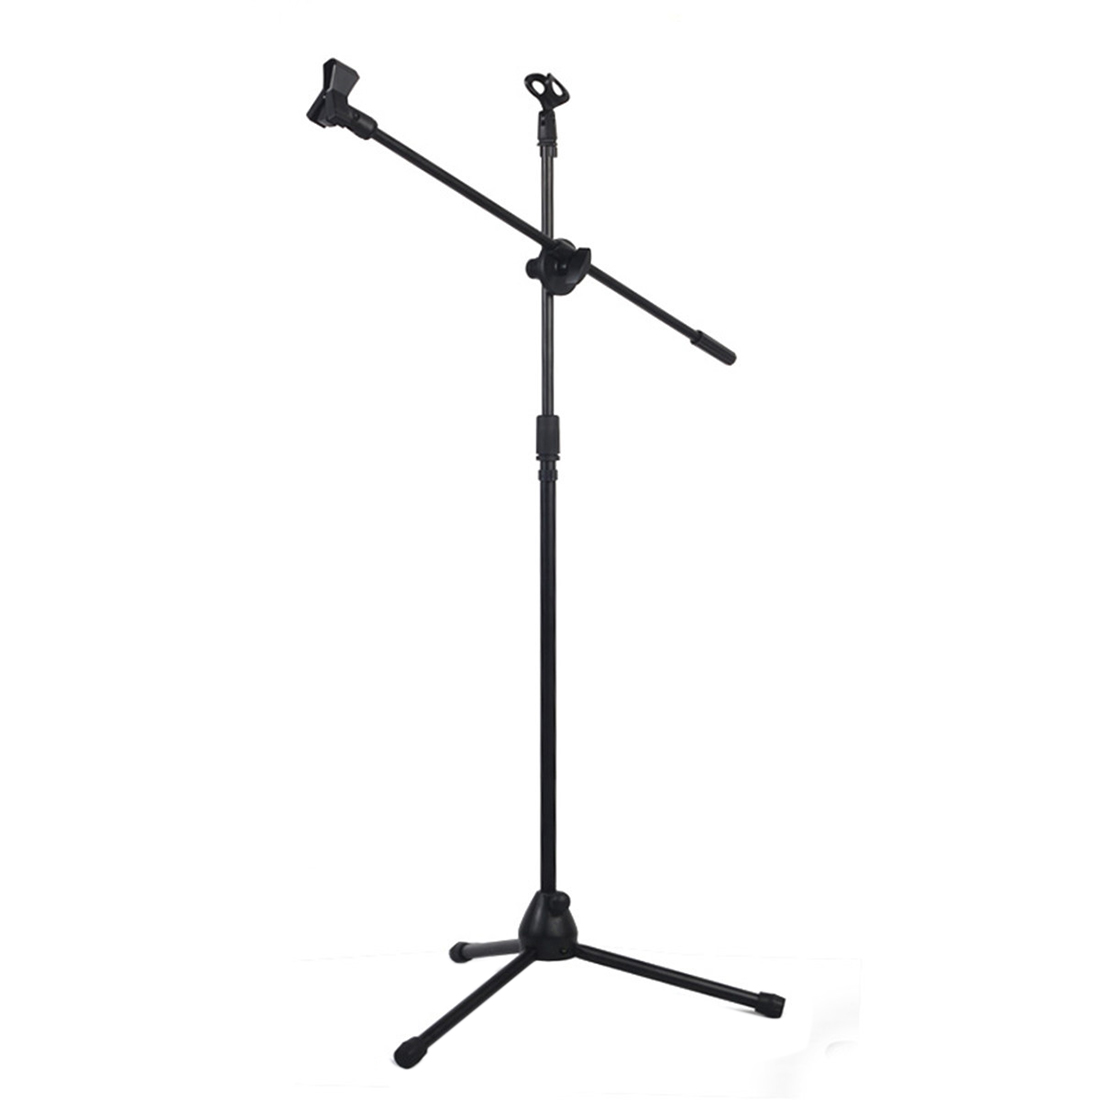 SCLS Universal Professional Swing Boom Floor Stand Microphone Holder Adjustable Detachable Double-headed Stage Clip Tripod